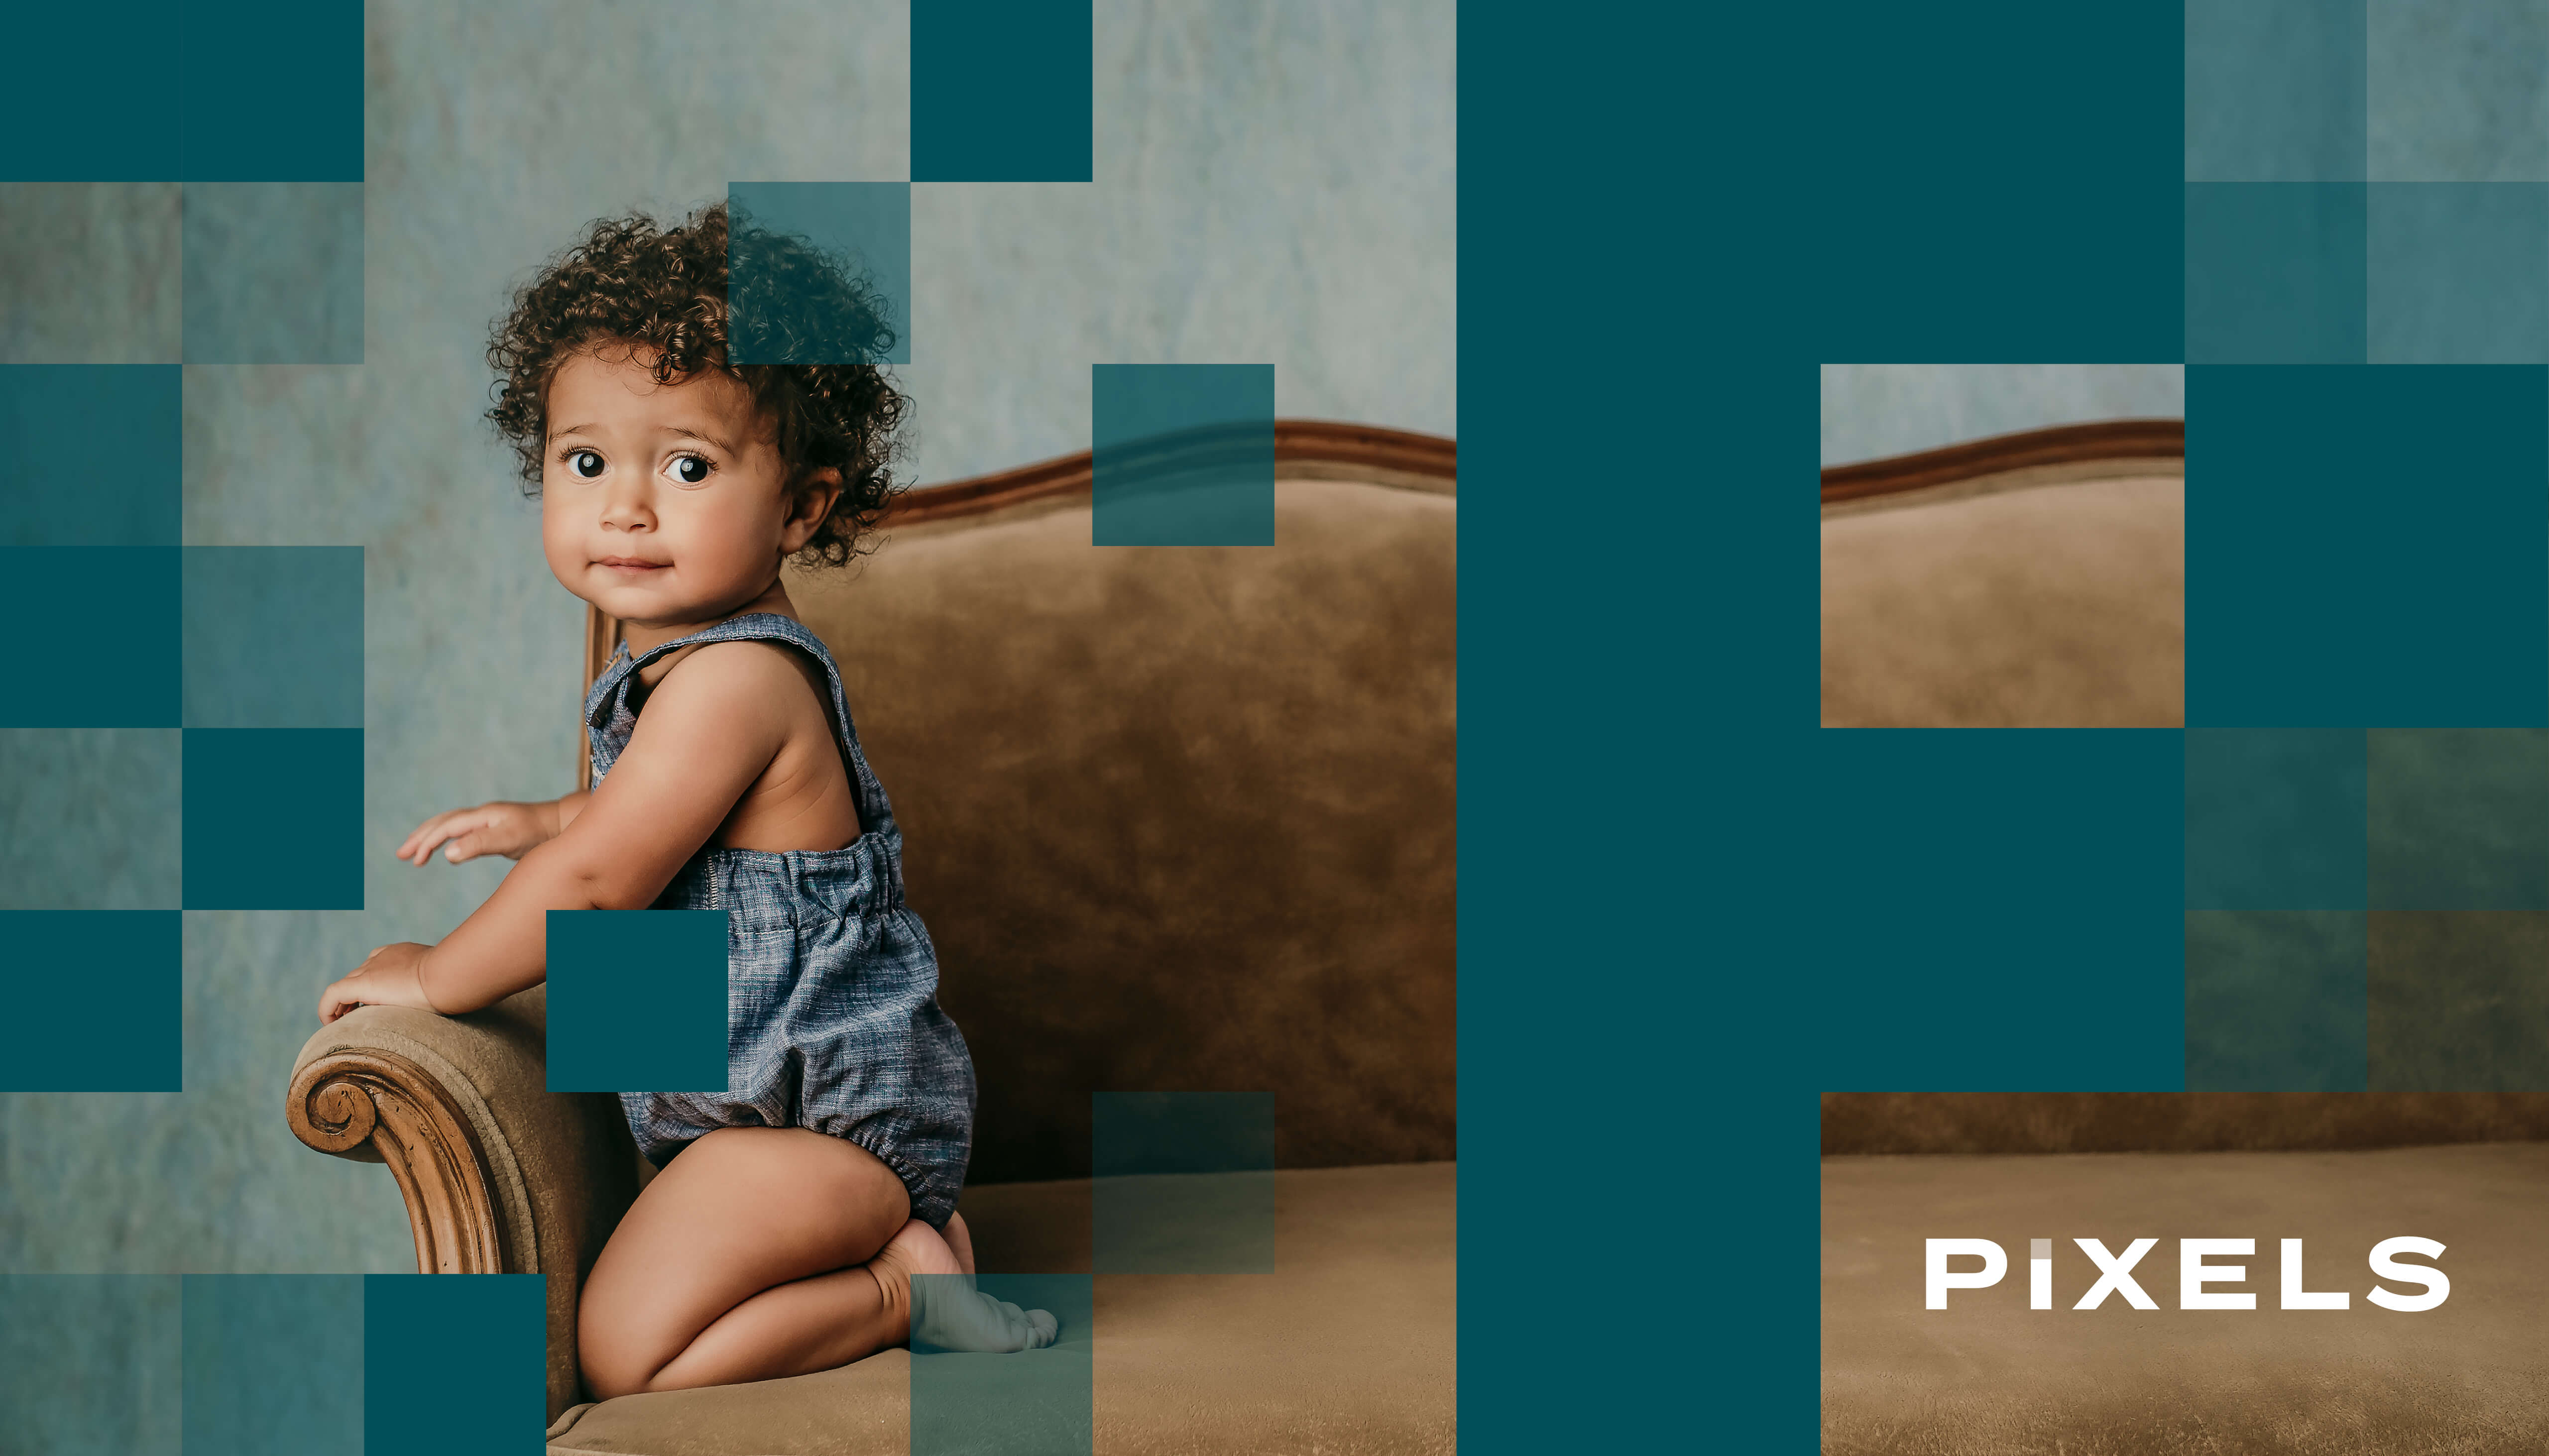 Pixels by Emily - Newborn, Maternity, and Family Portraits - Branding